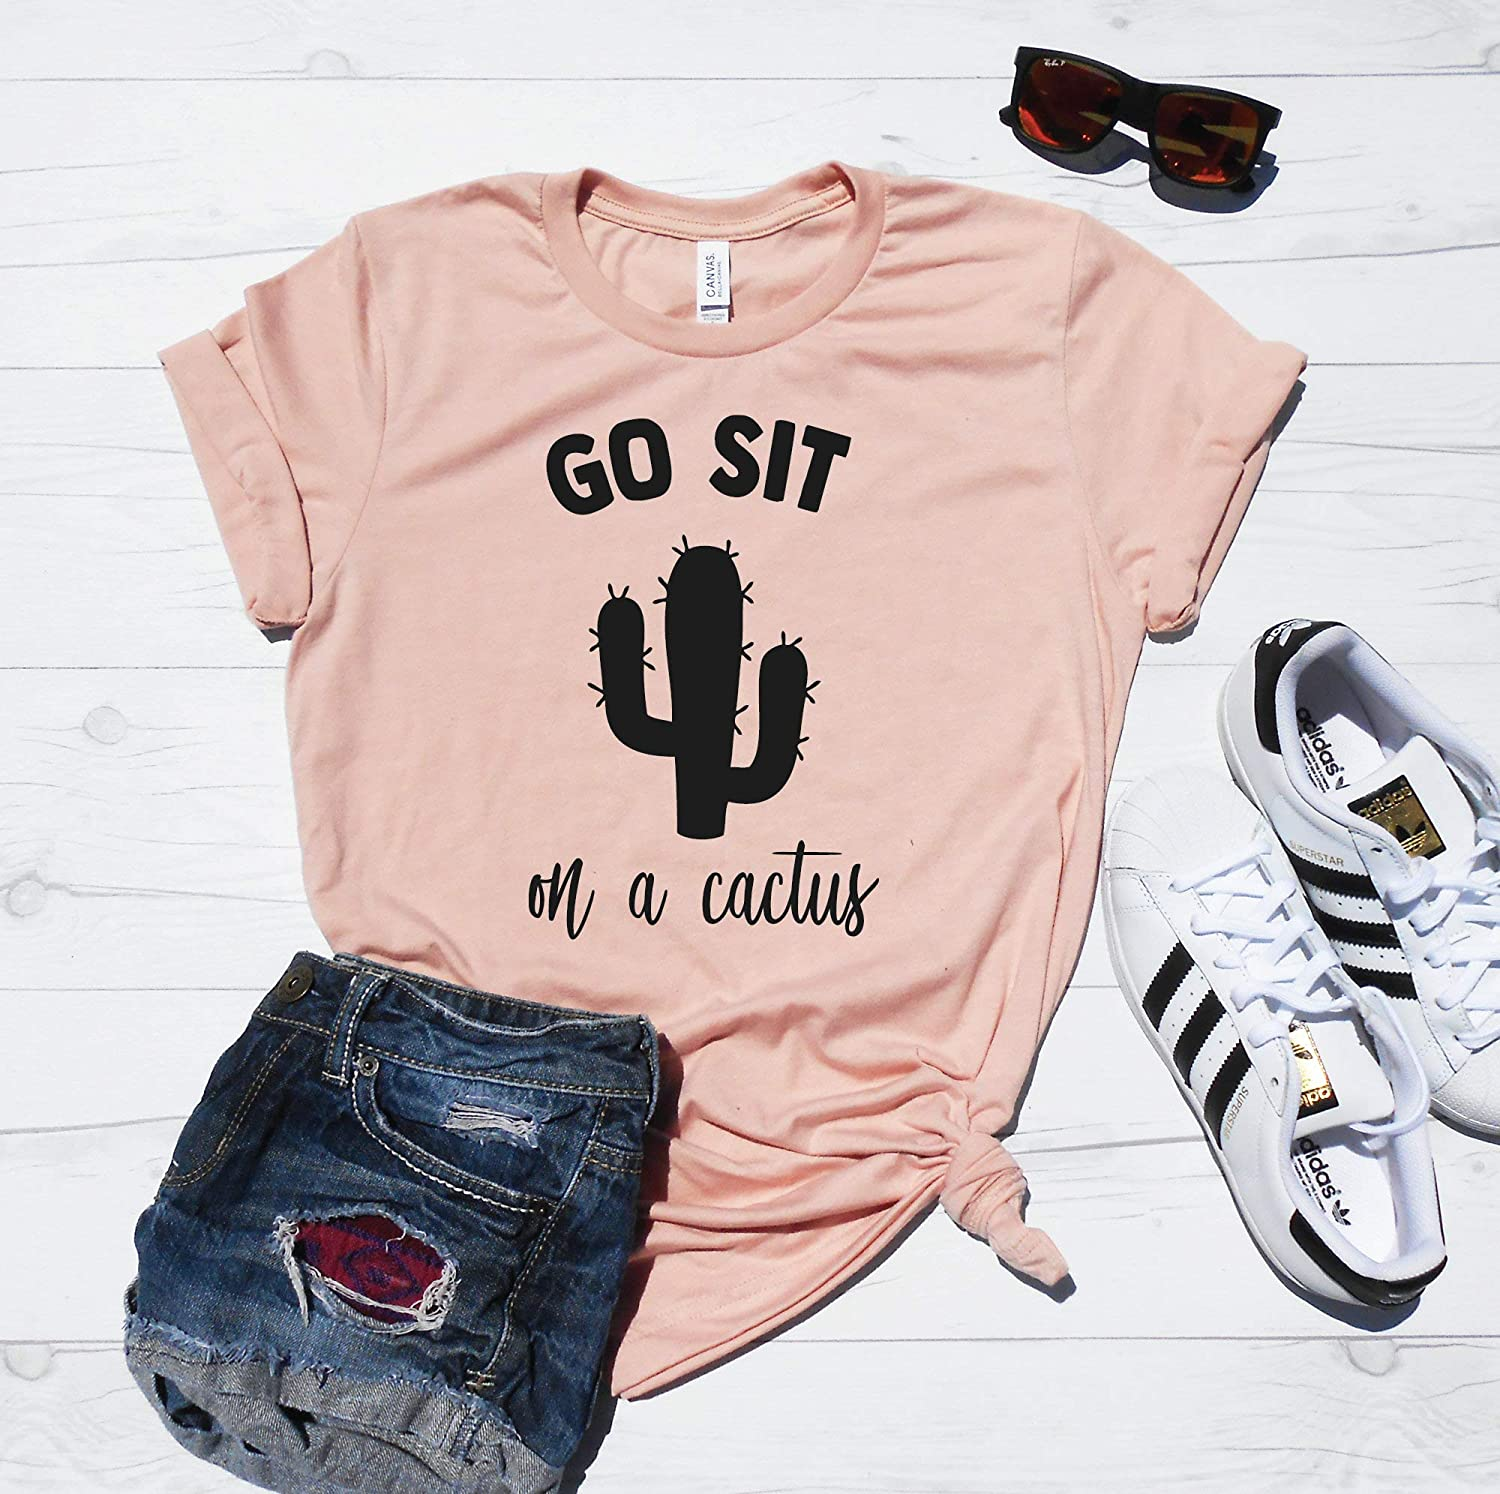 6ce2c9c5 Go Sit On A Cactus Shirt by Strong Girl Clothing. Super soft, unisex fit t- shirt. Super cute worn with sleeves rolled up, and a side/front knot!